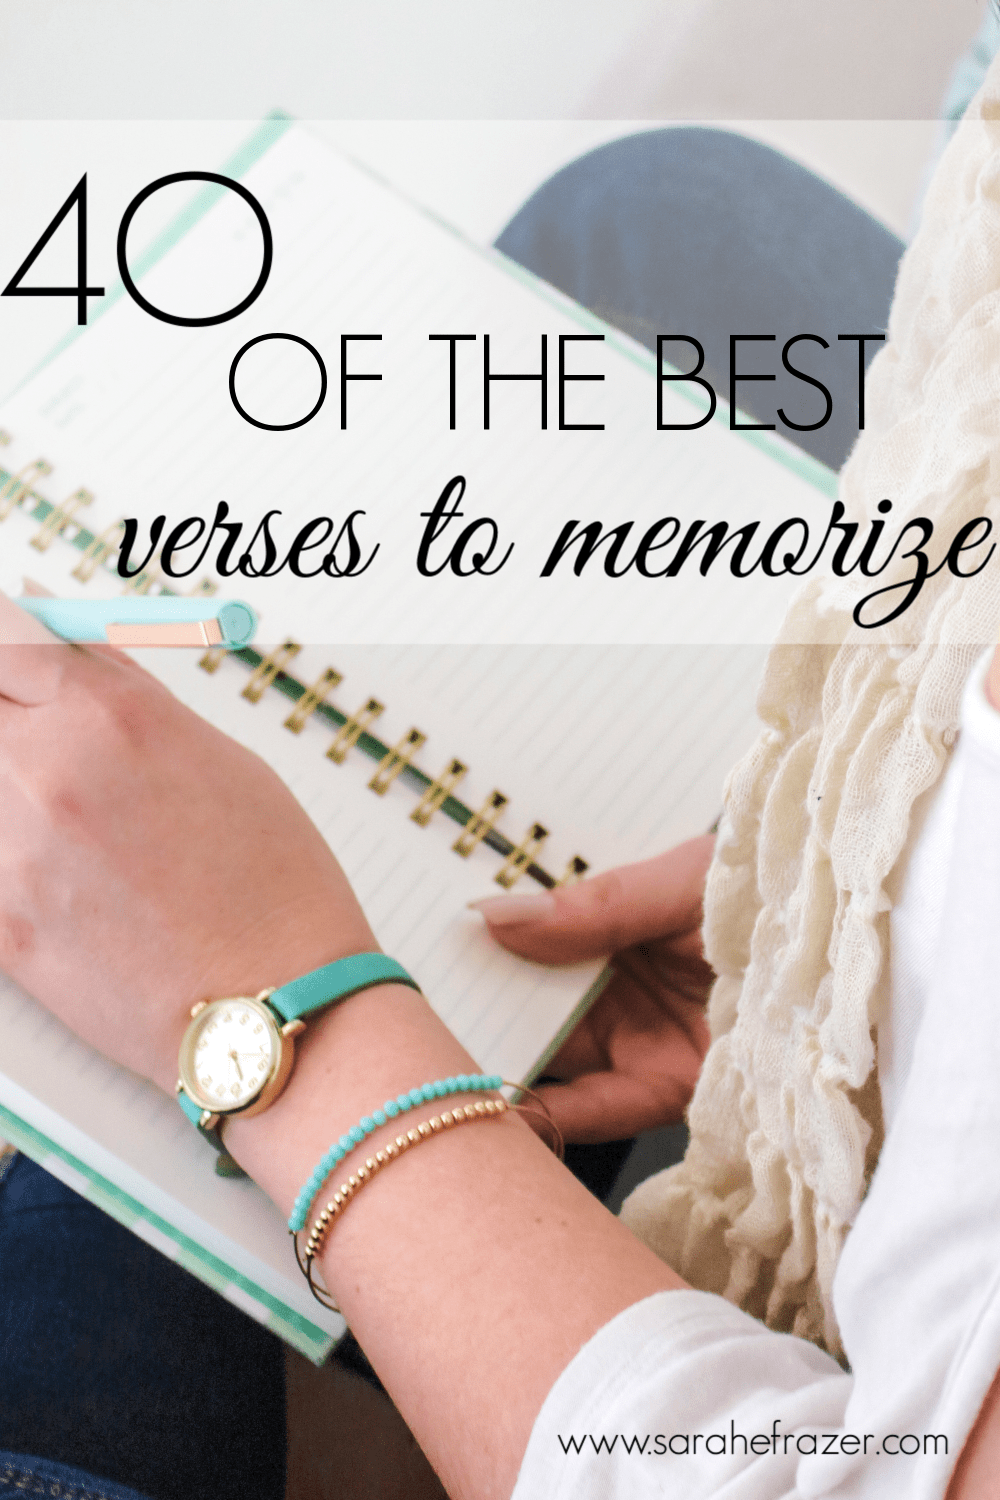 40 of the Best Verses to Memorize